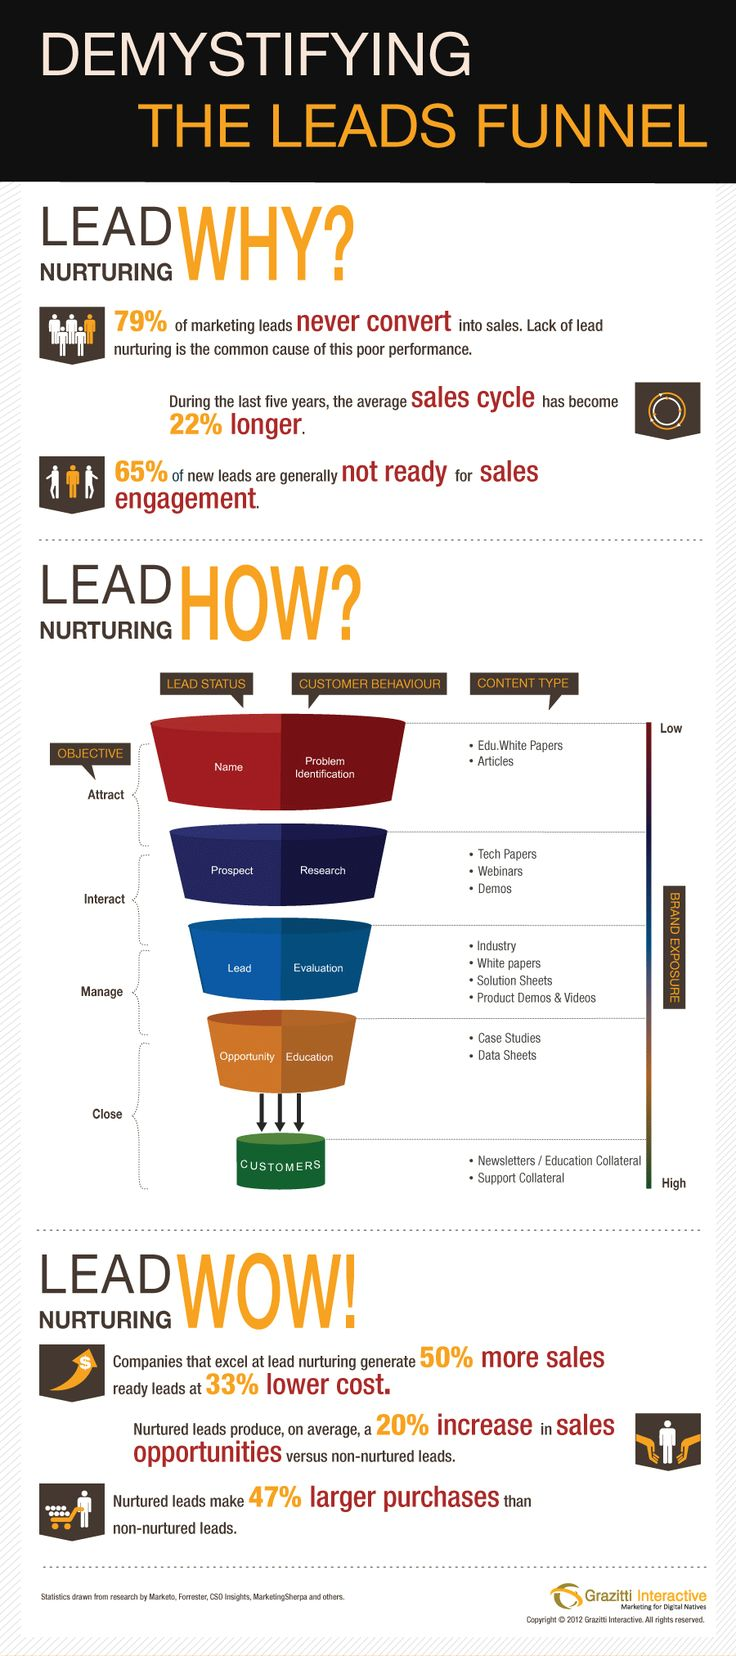 Optimizing the leads funnel demands understanding the prospective customers, mapping content to each stage of the funnel and ensuring adequate brand e